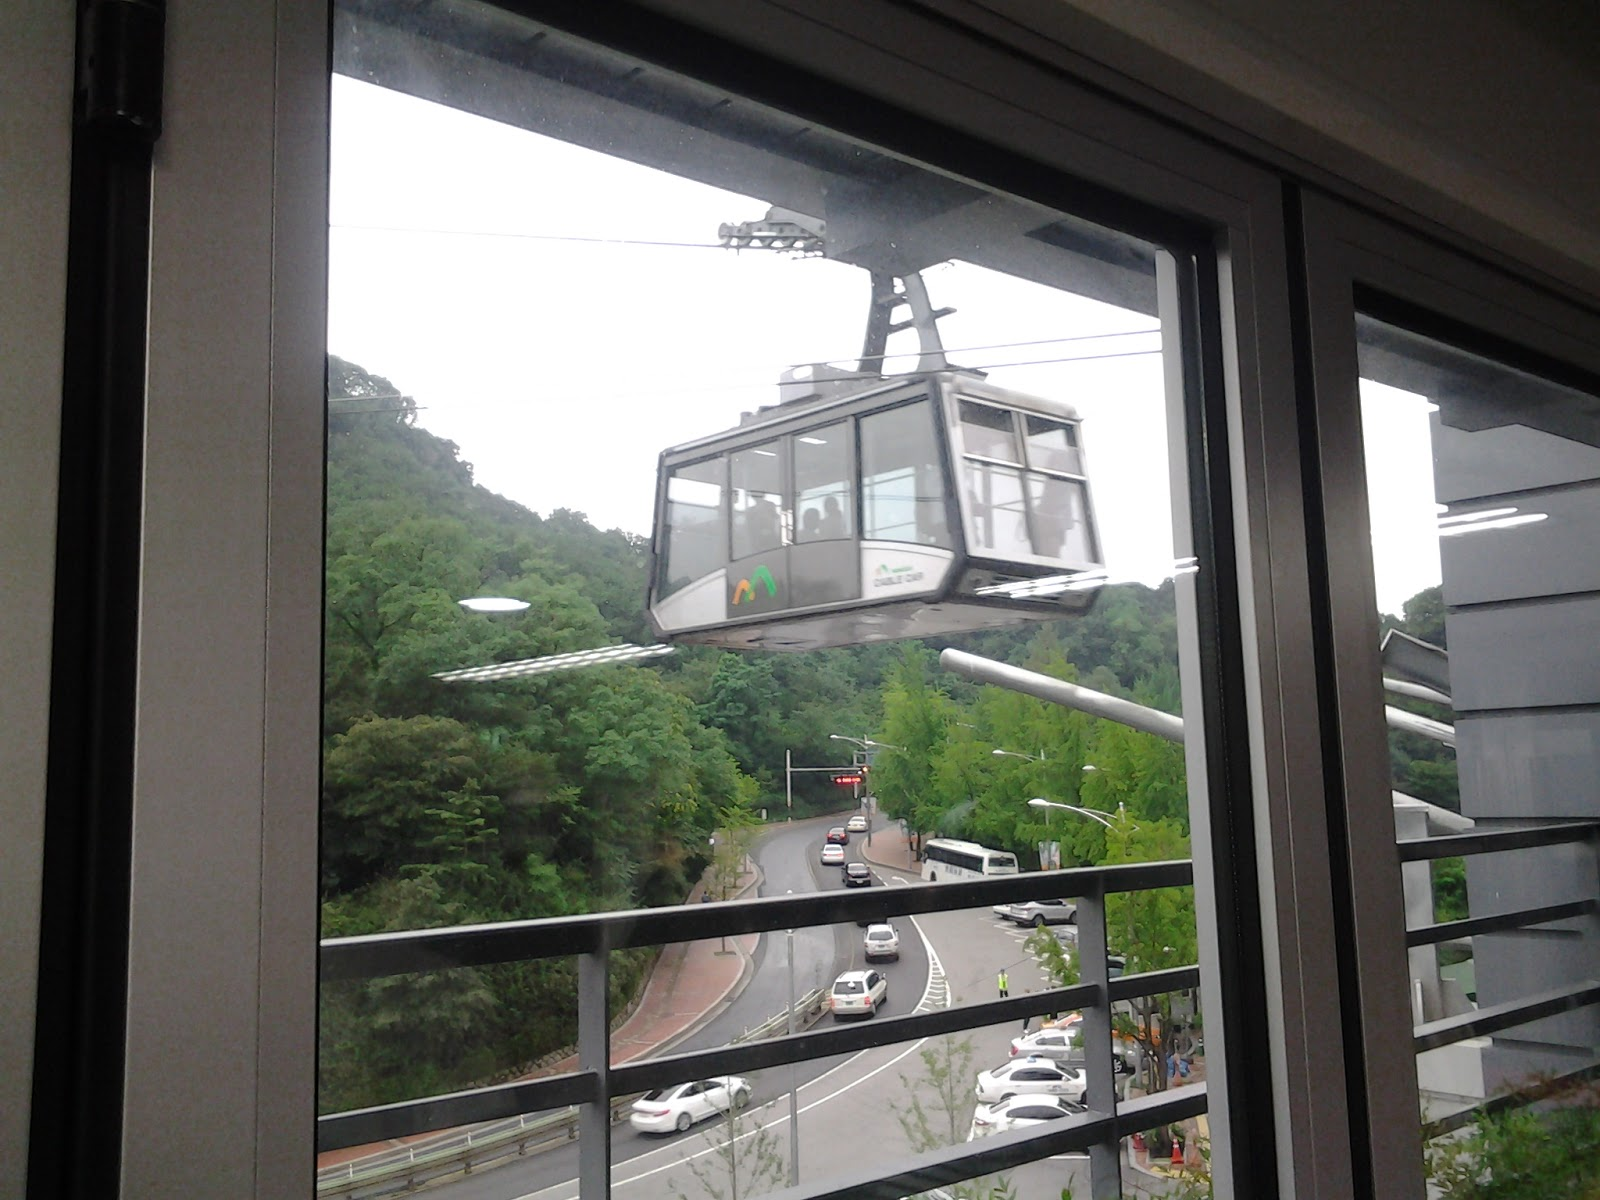 Namsan cable car -  Inclined Elevator Which Runs Between The Front Of The Namsan Tunnel And The Cable Car Platform The Namsan Cable Car Is Transparent On All Sides